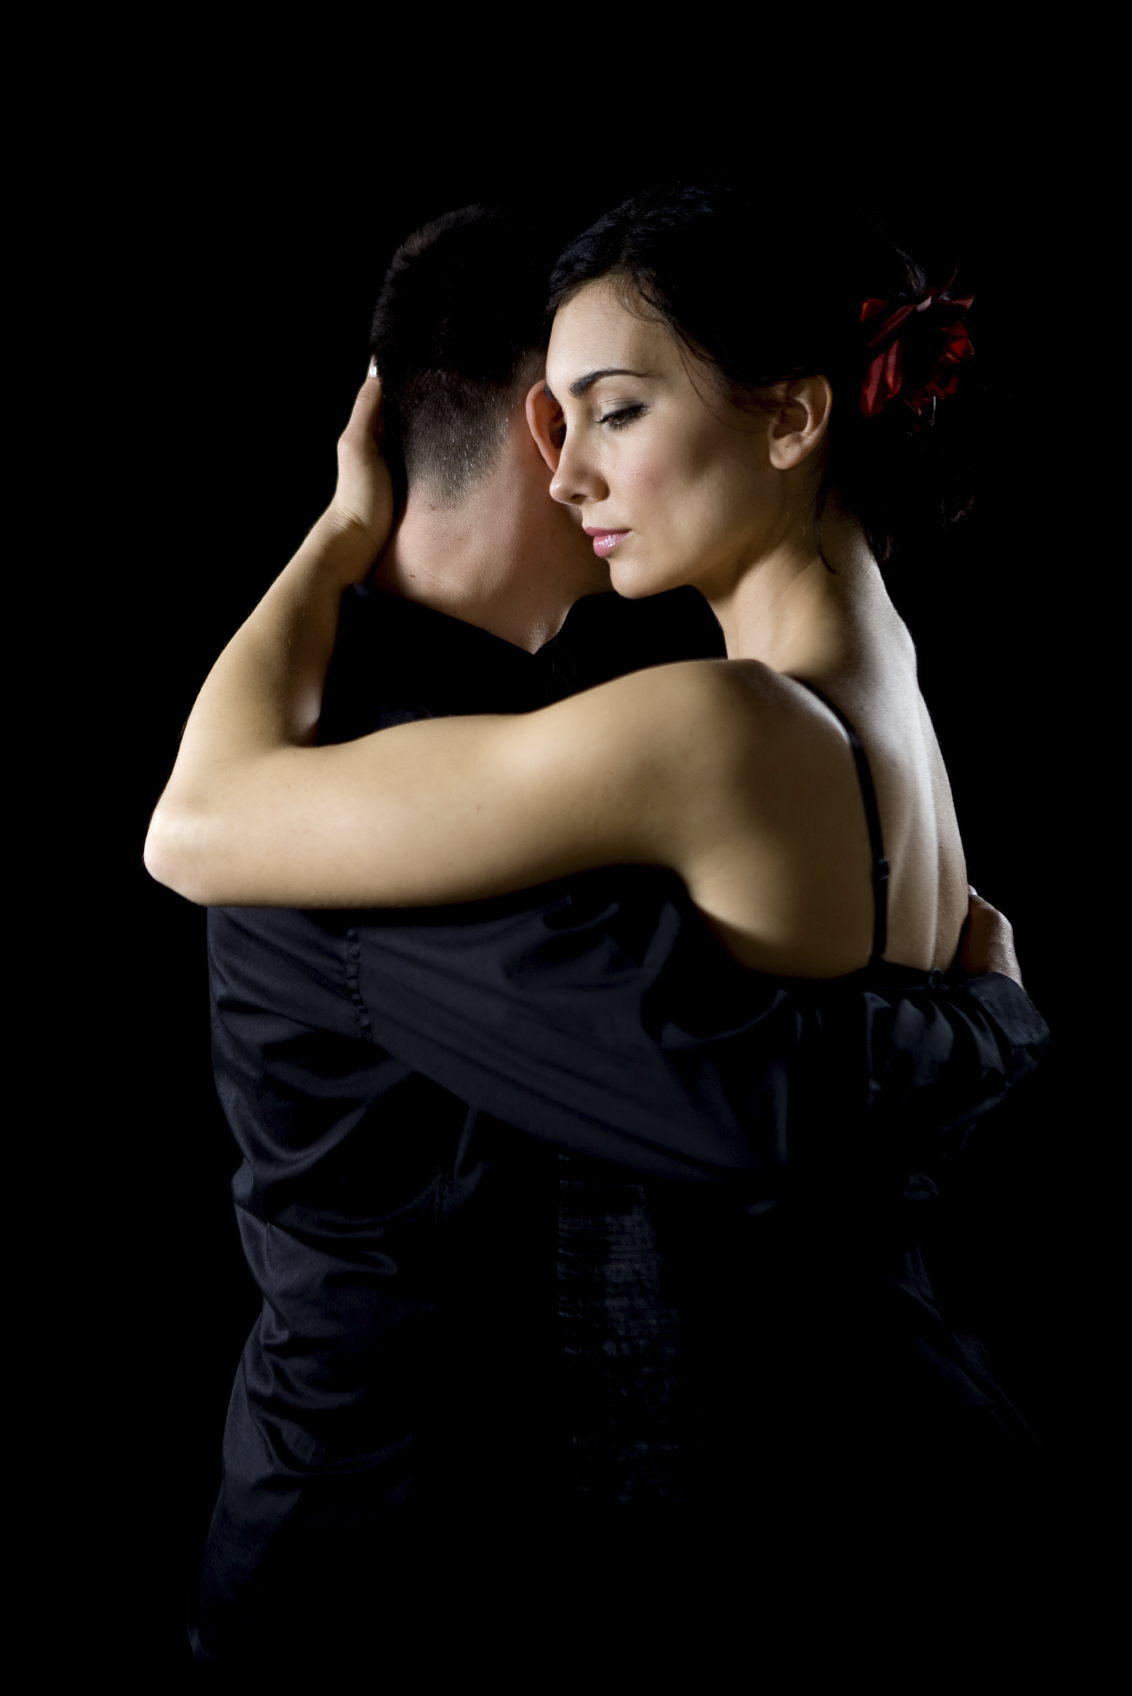 Relieve Stress by Learning Social Dance | Dance Lessons in ...